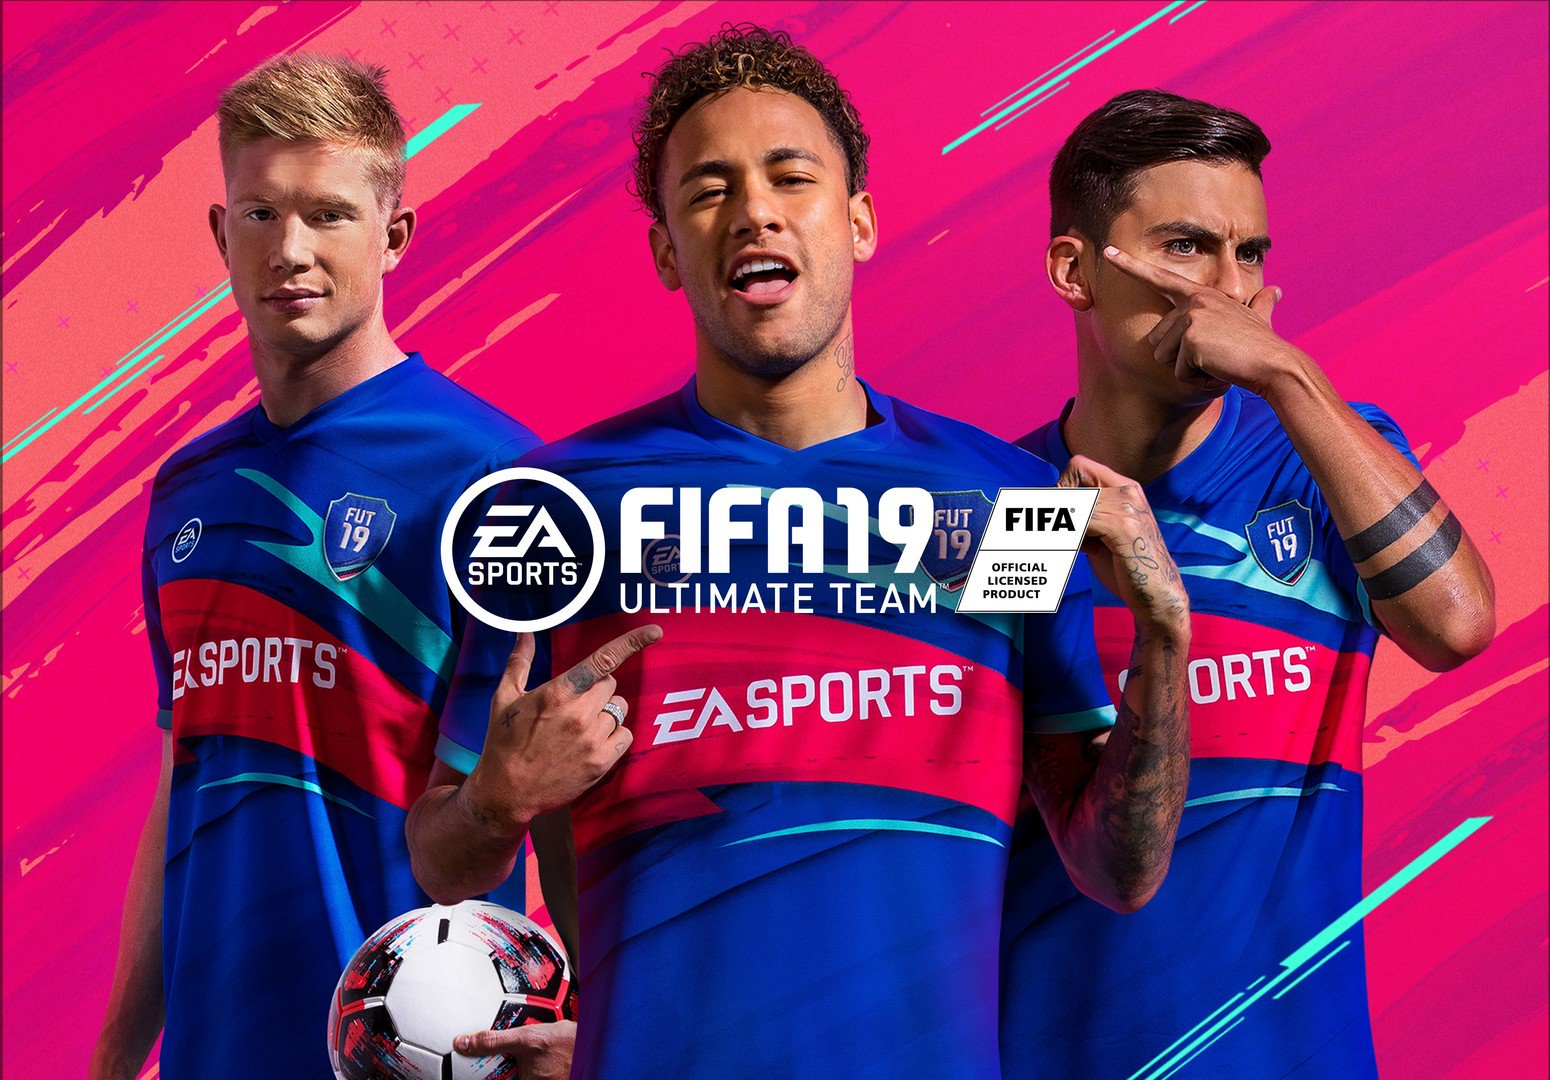 When do the FUT Champs rewards come out in FIFA 19?